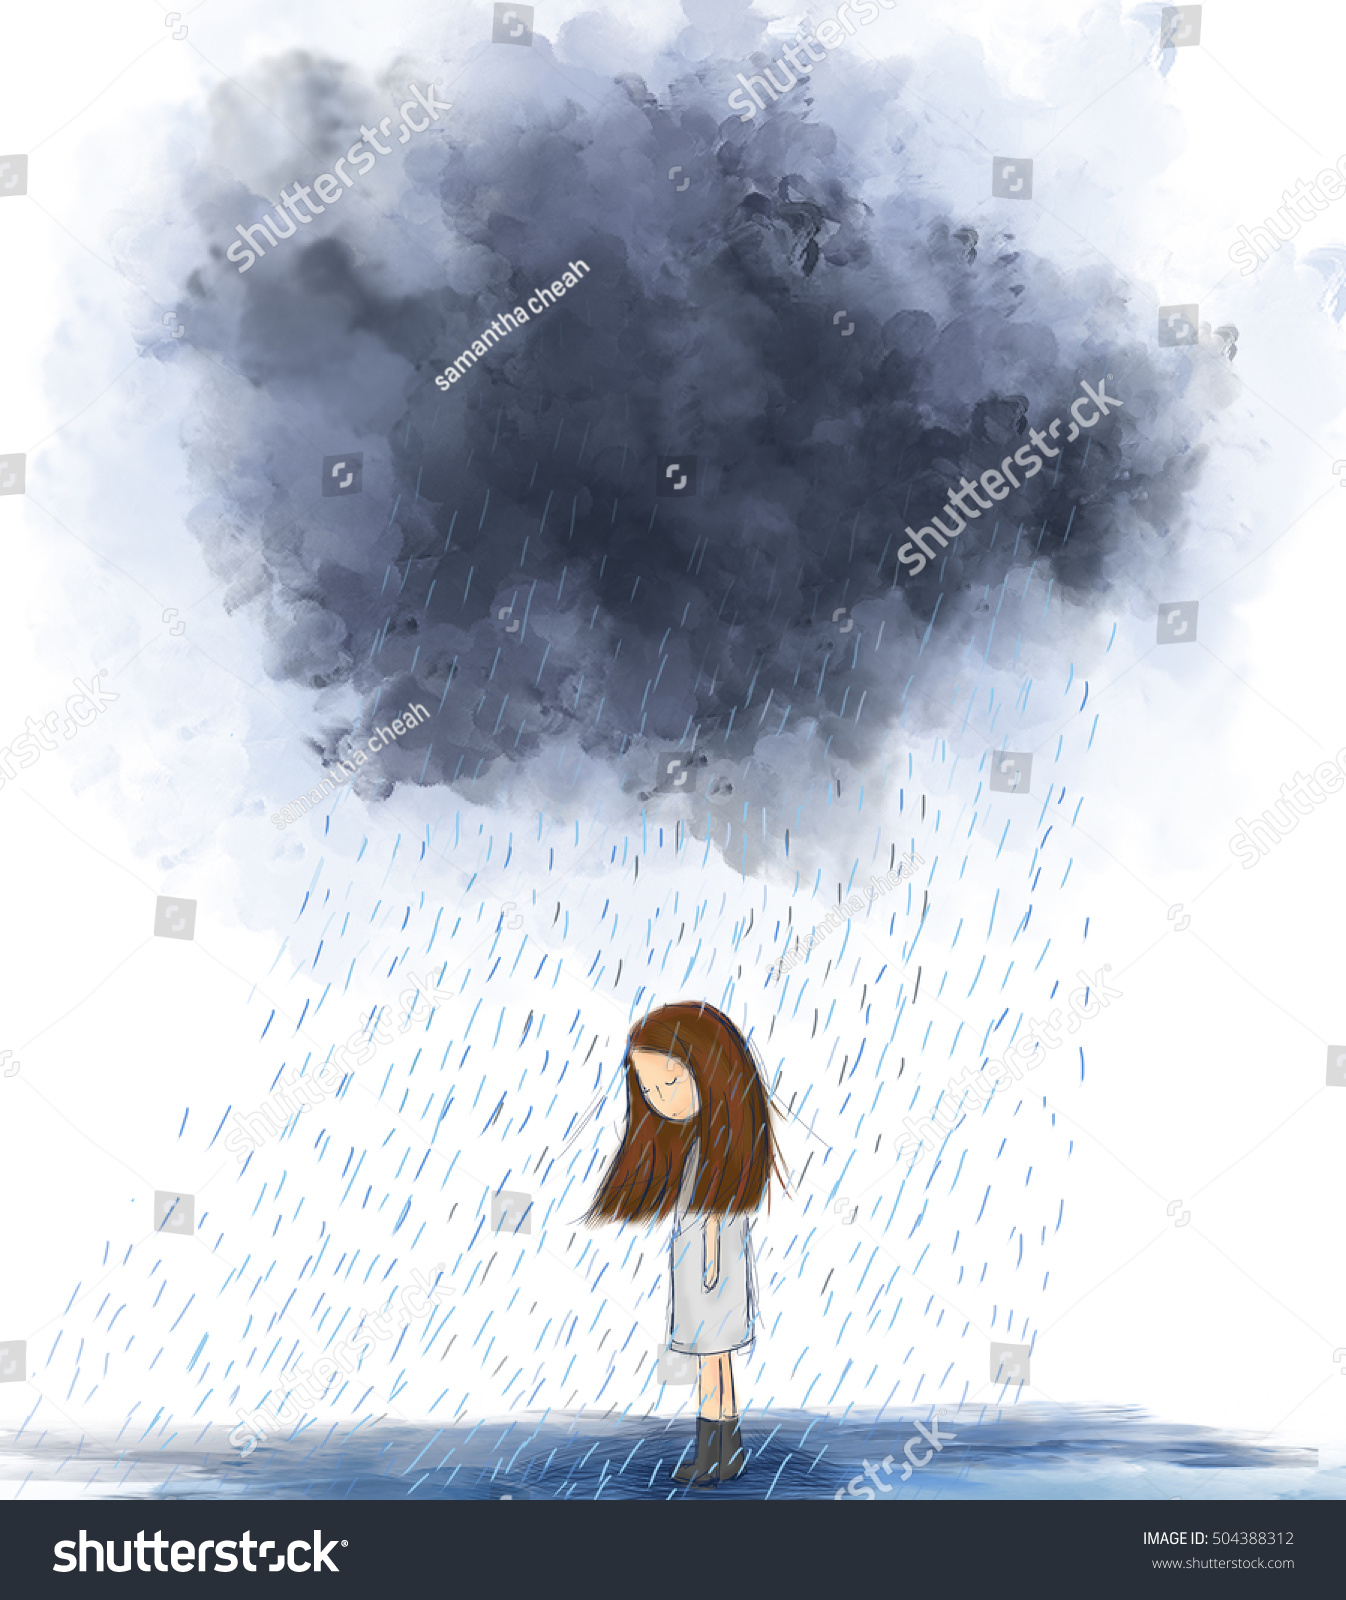 Painting of heart broken girl standing under gray raining cloud idea of storm lonely